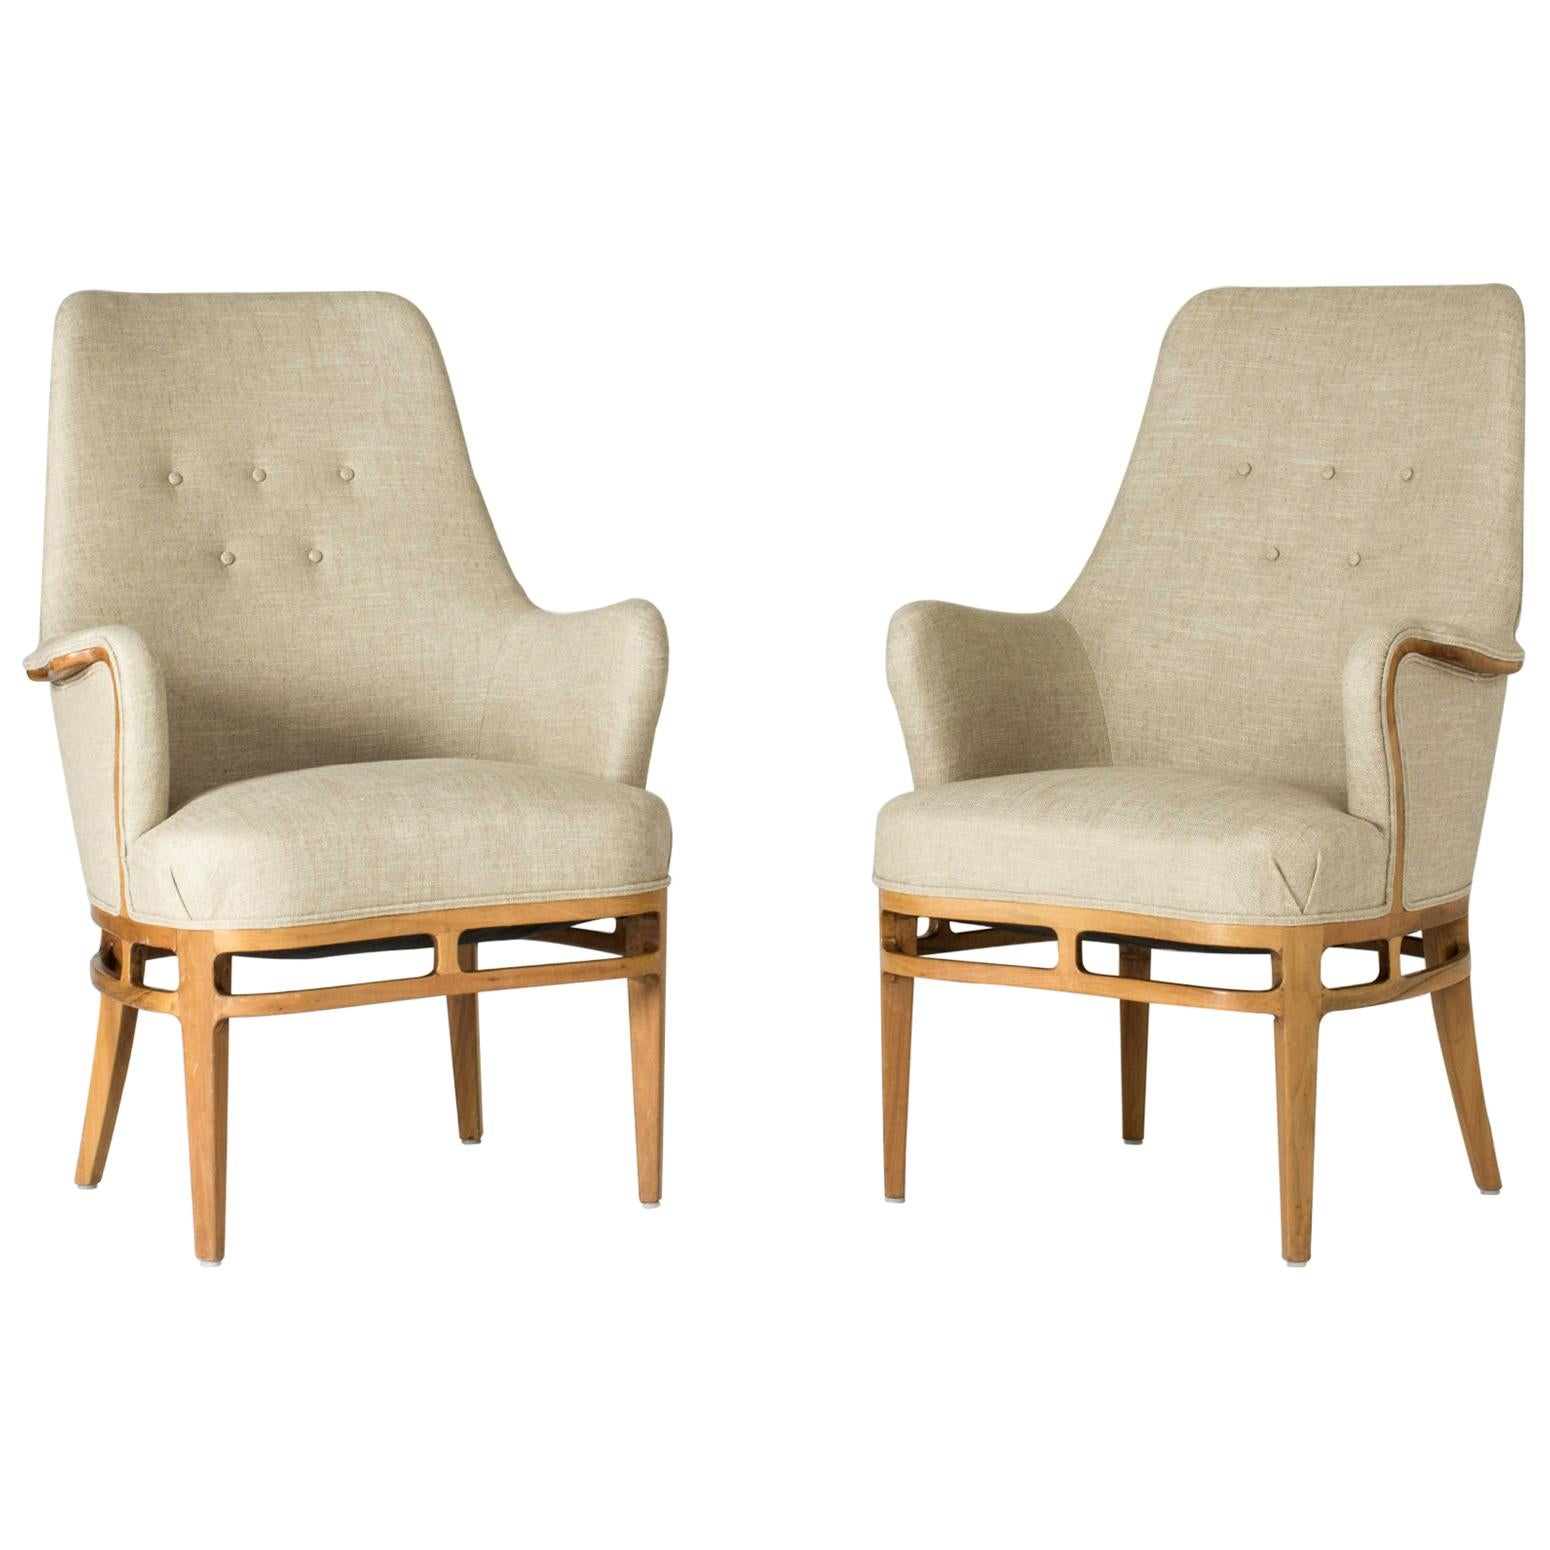 Pair of Lounge Chairs by Carl-Axel Acking